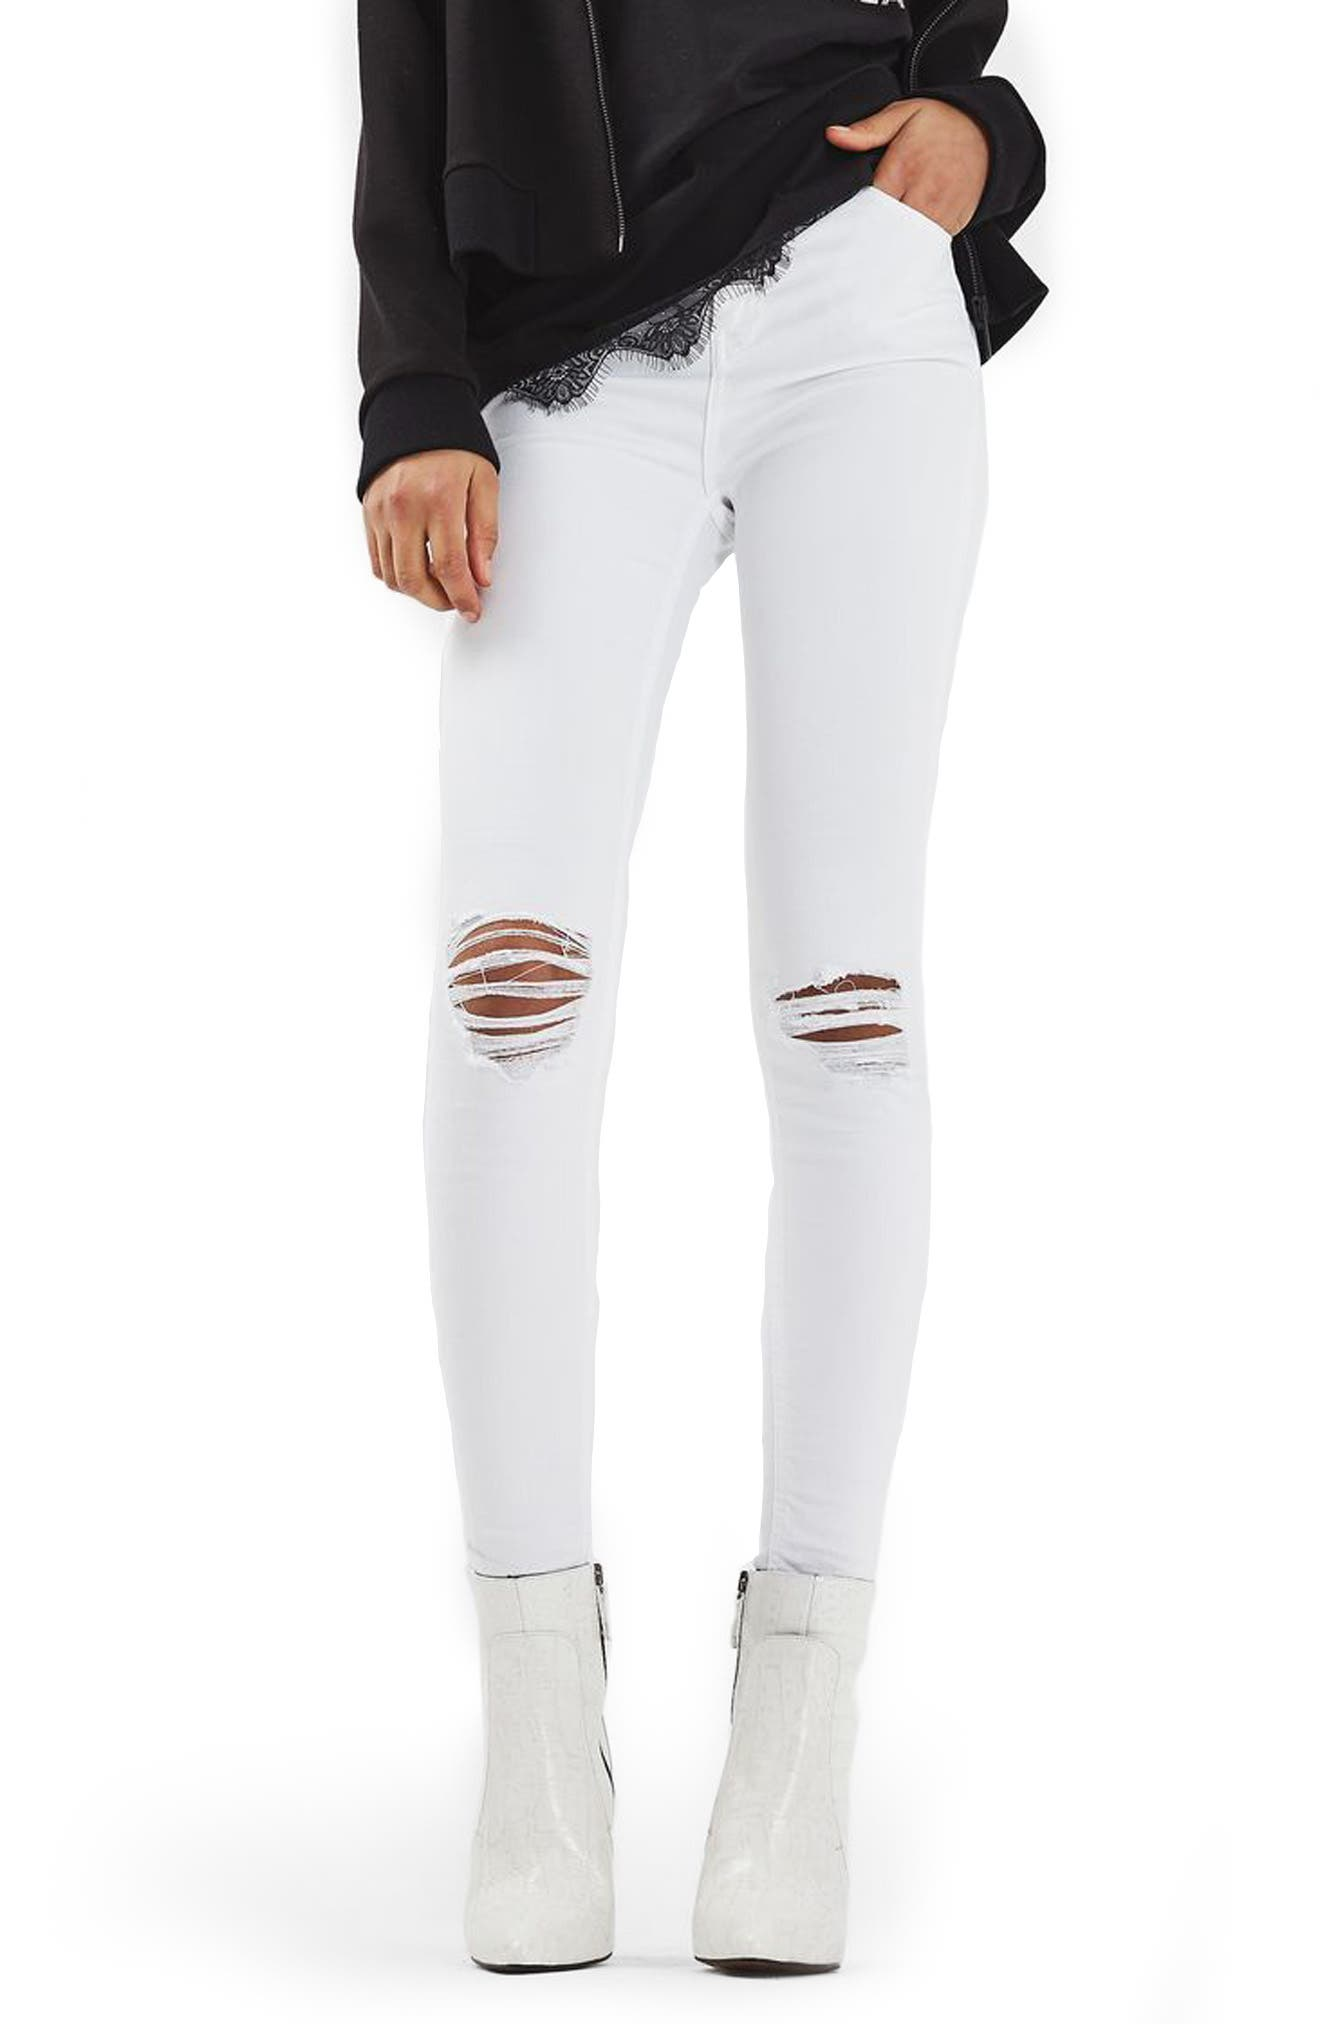 TOPSHOP, Jamie Ripped Skinny Jeans, Main thumbnail 1, color, 100